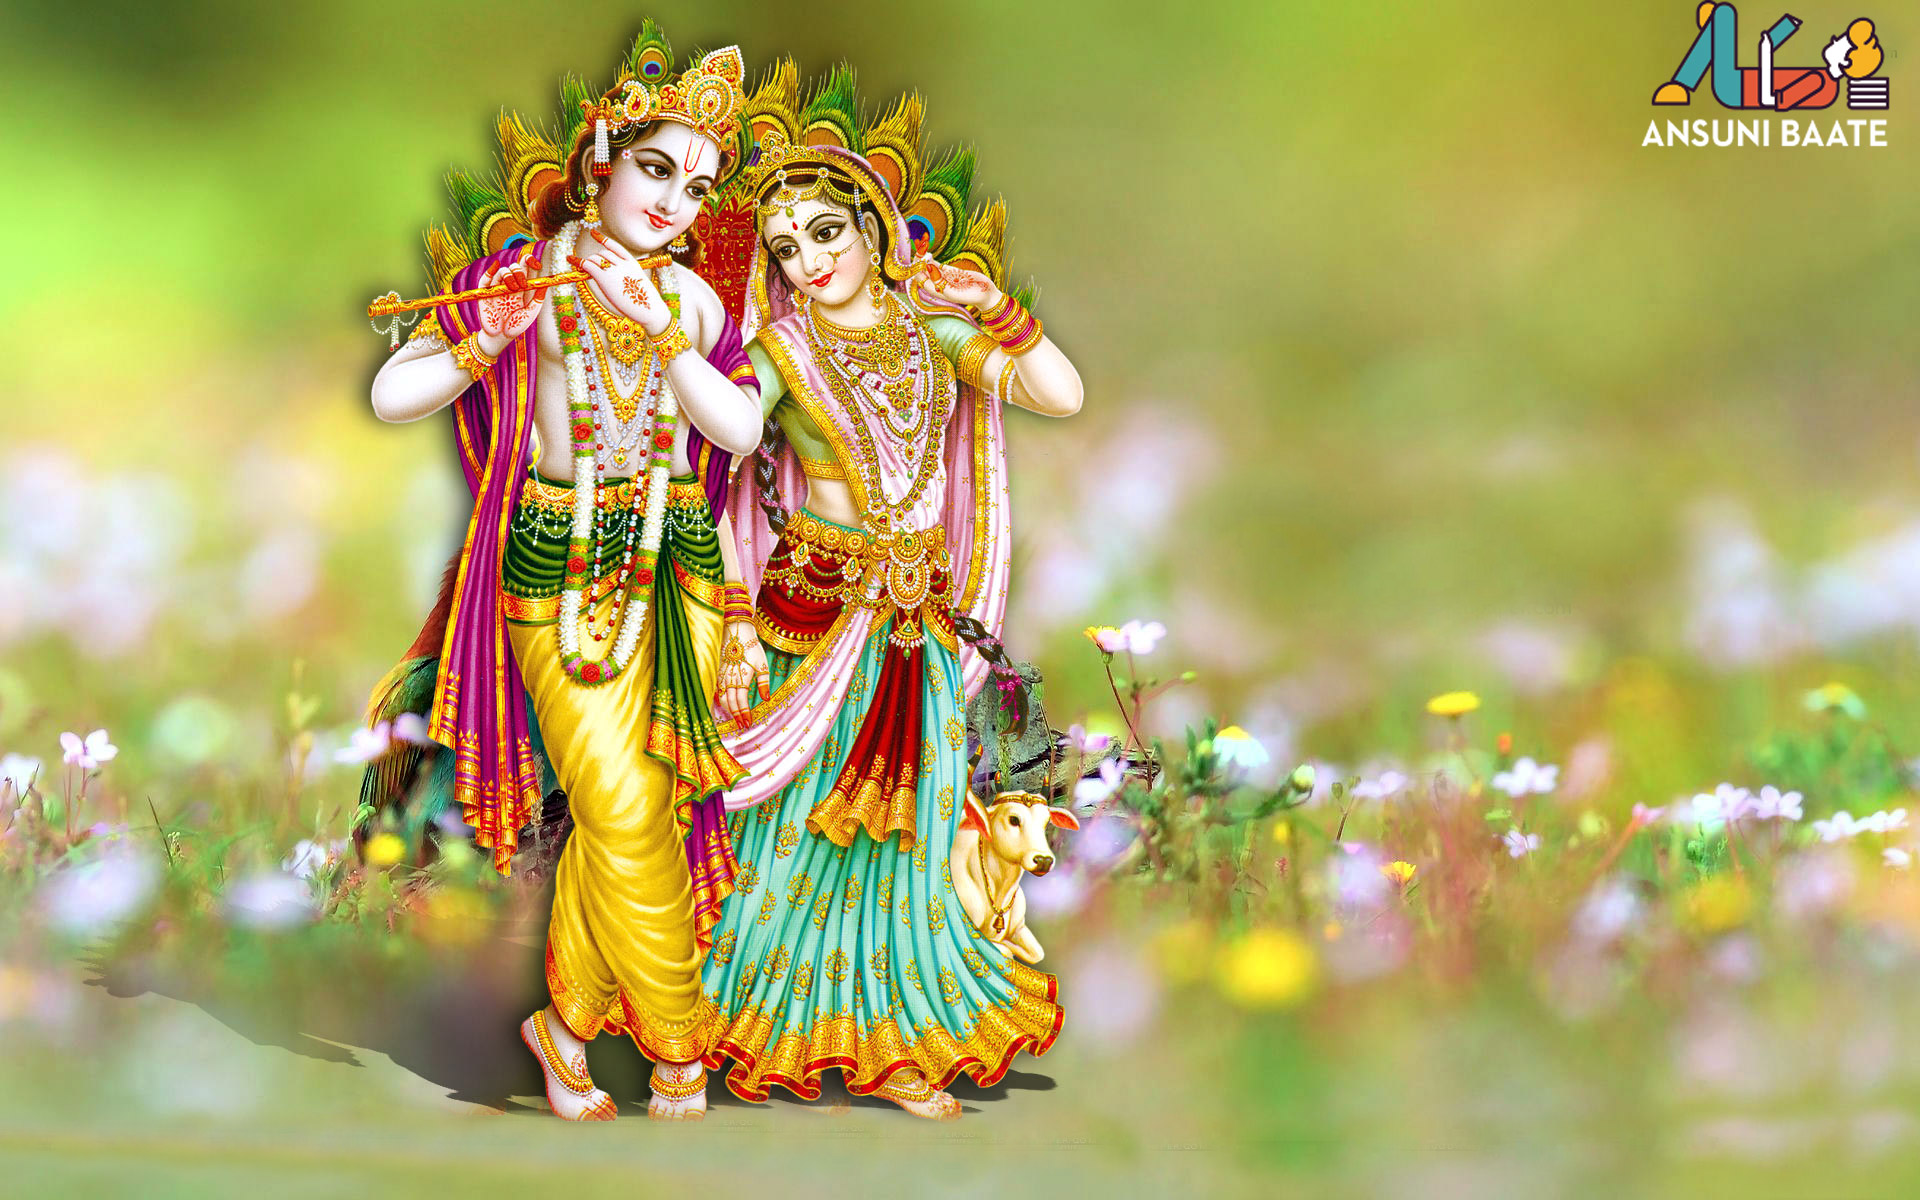 कृष्णा जन्माष्टमी एचडी इमेज डाउनलोड  Lord Krishna Image & HD God Krishna Photo Gallery Free Download krishna wallpaper hd for mobile,radha krishna hd wallpaper for mobile,Govinda